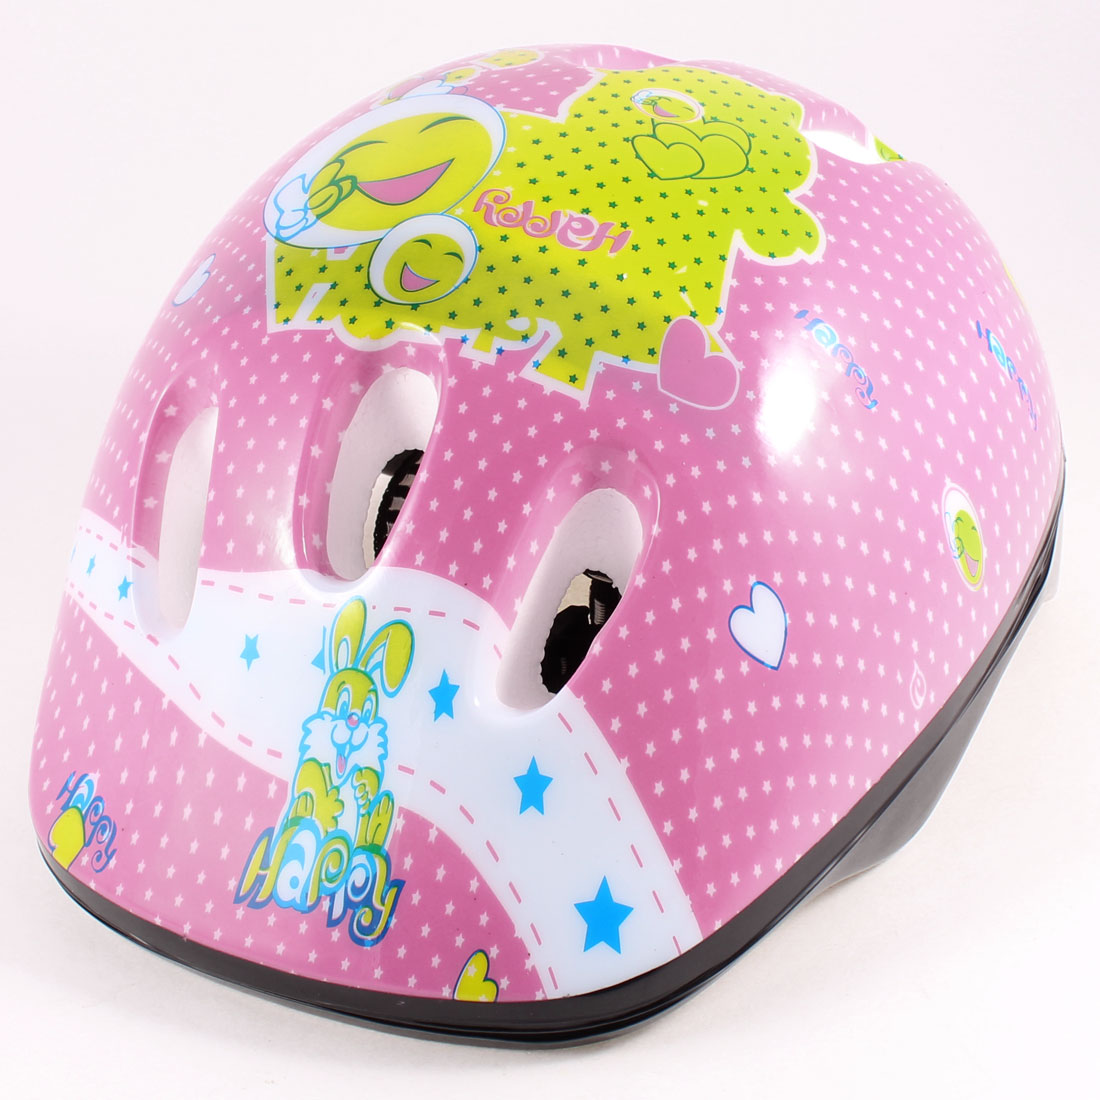 Child Rabbit Prints Quick Release Buckle Bike Cycle Skate Safety Helmet Pink